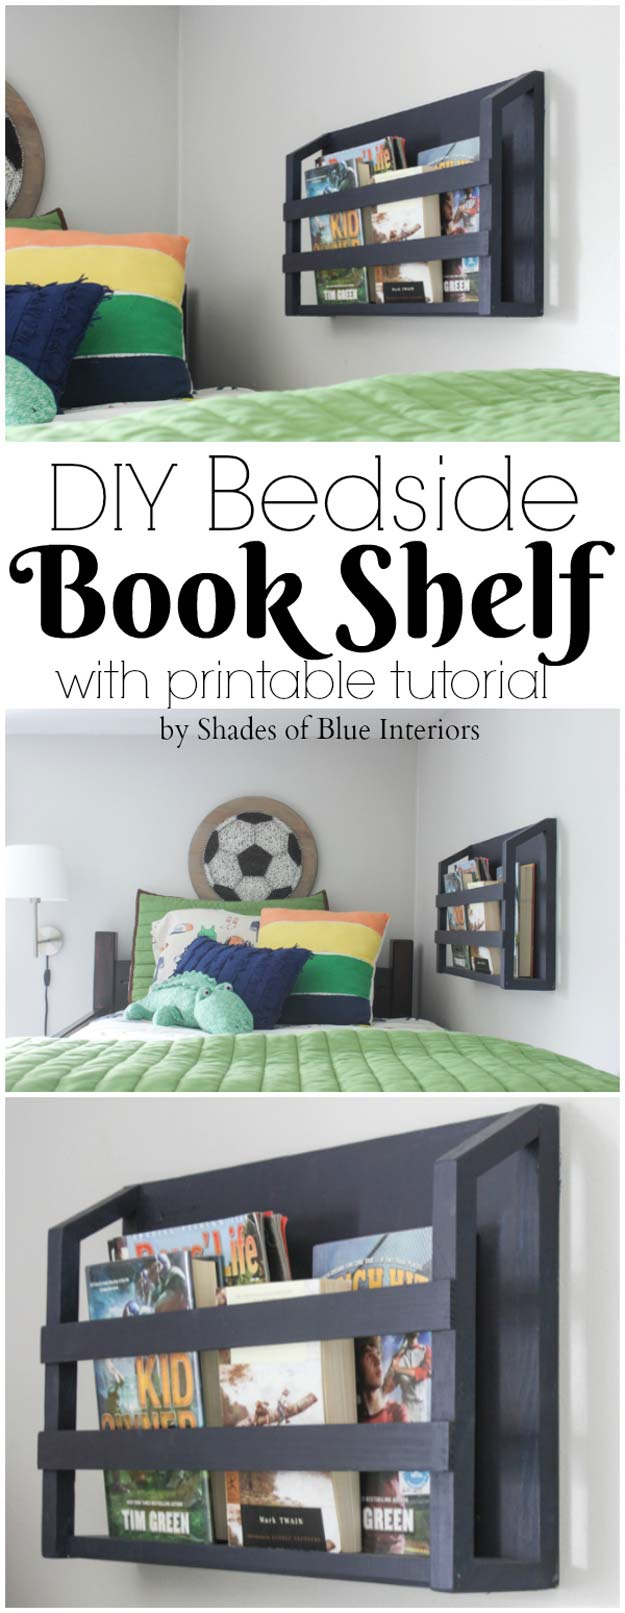 DIY Room Decor Ideas for Boys - - DIY Bedside Book Shelf - Teen Bedroom Decor Idea for Boy - Wall Art, Lighting, Lamps, Shelves, Bedding, Curtains and Rugs for Boy Rooms - Easy Step by Step Tutorials and Projects for Decorating Teens and Tweens Rooms http://diyprojectsforteens.com/diy-room-decor-boys